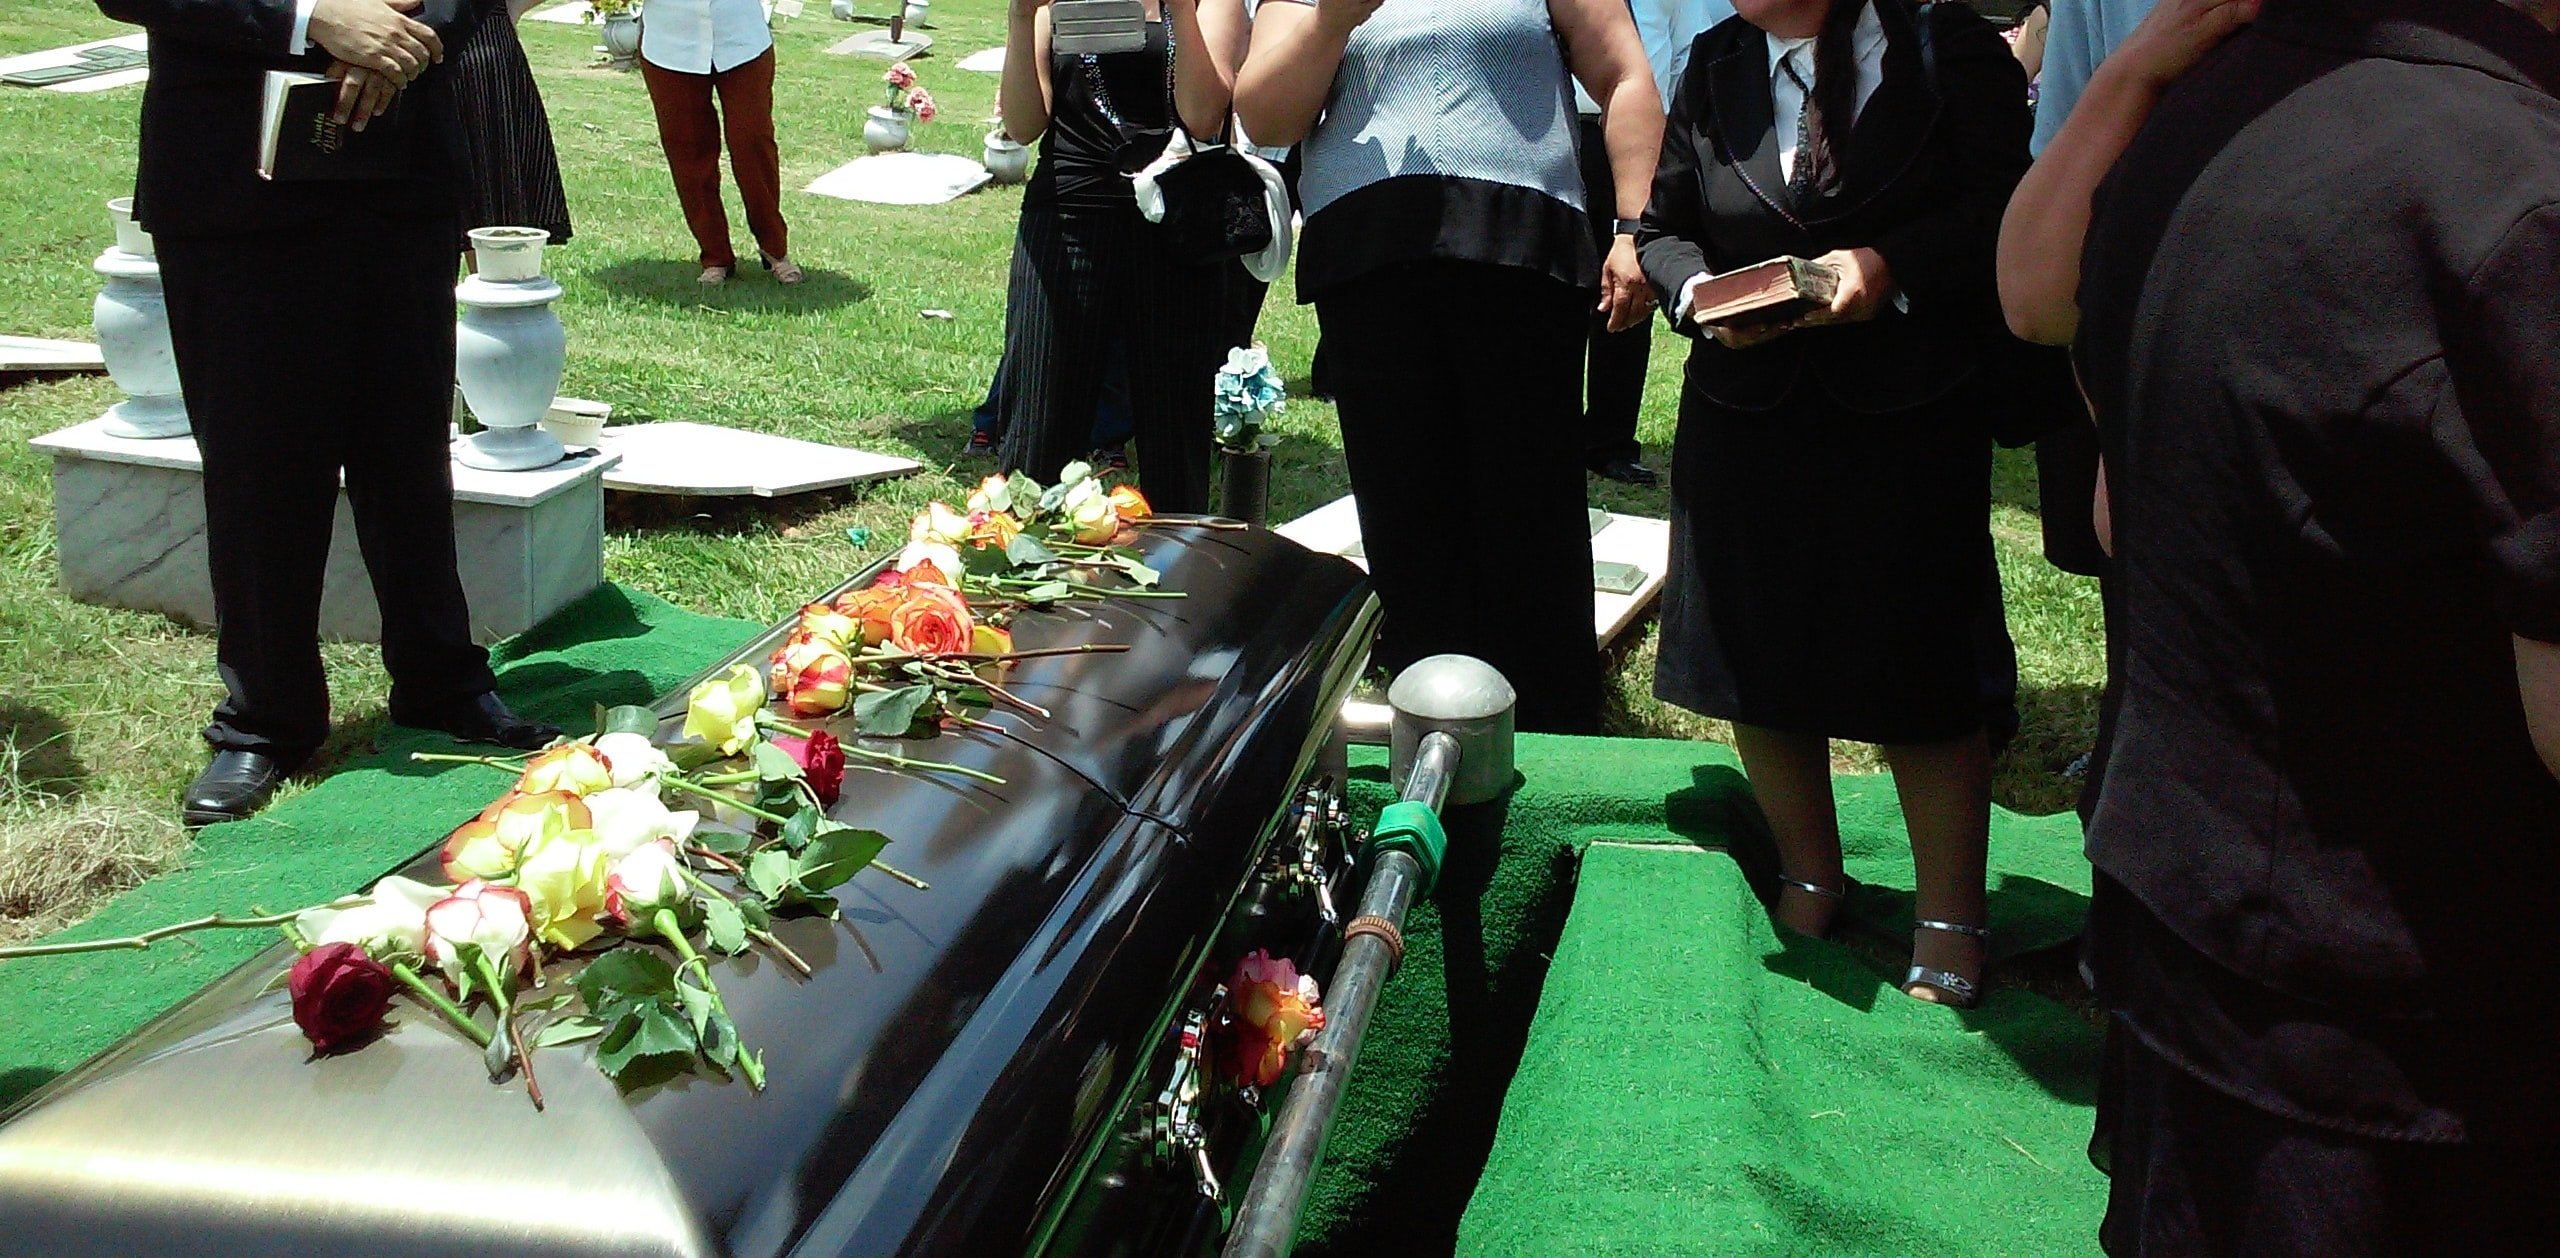 People attending a funeral | Photo: Unsplash